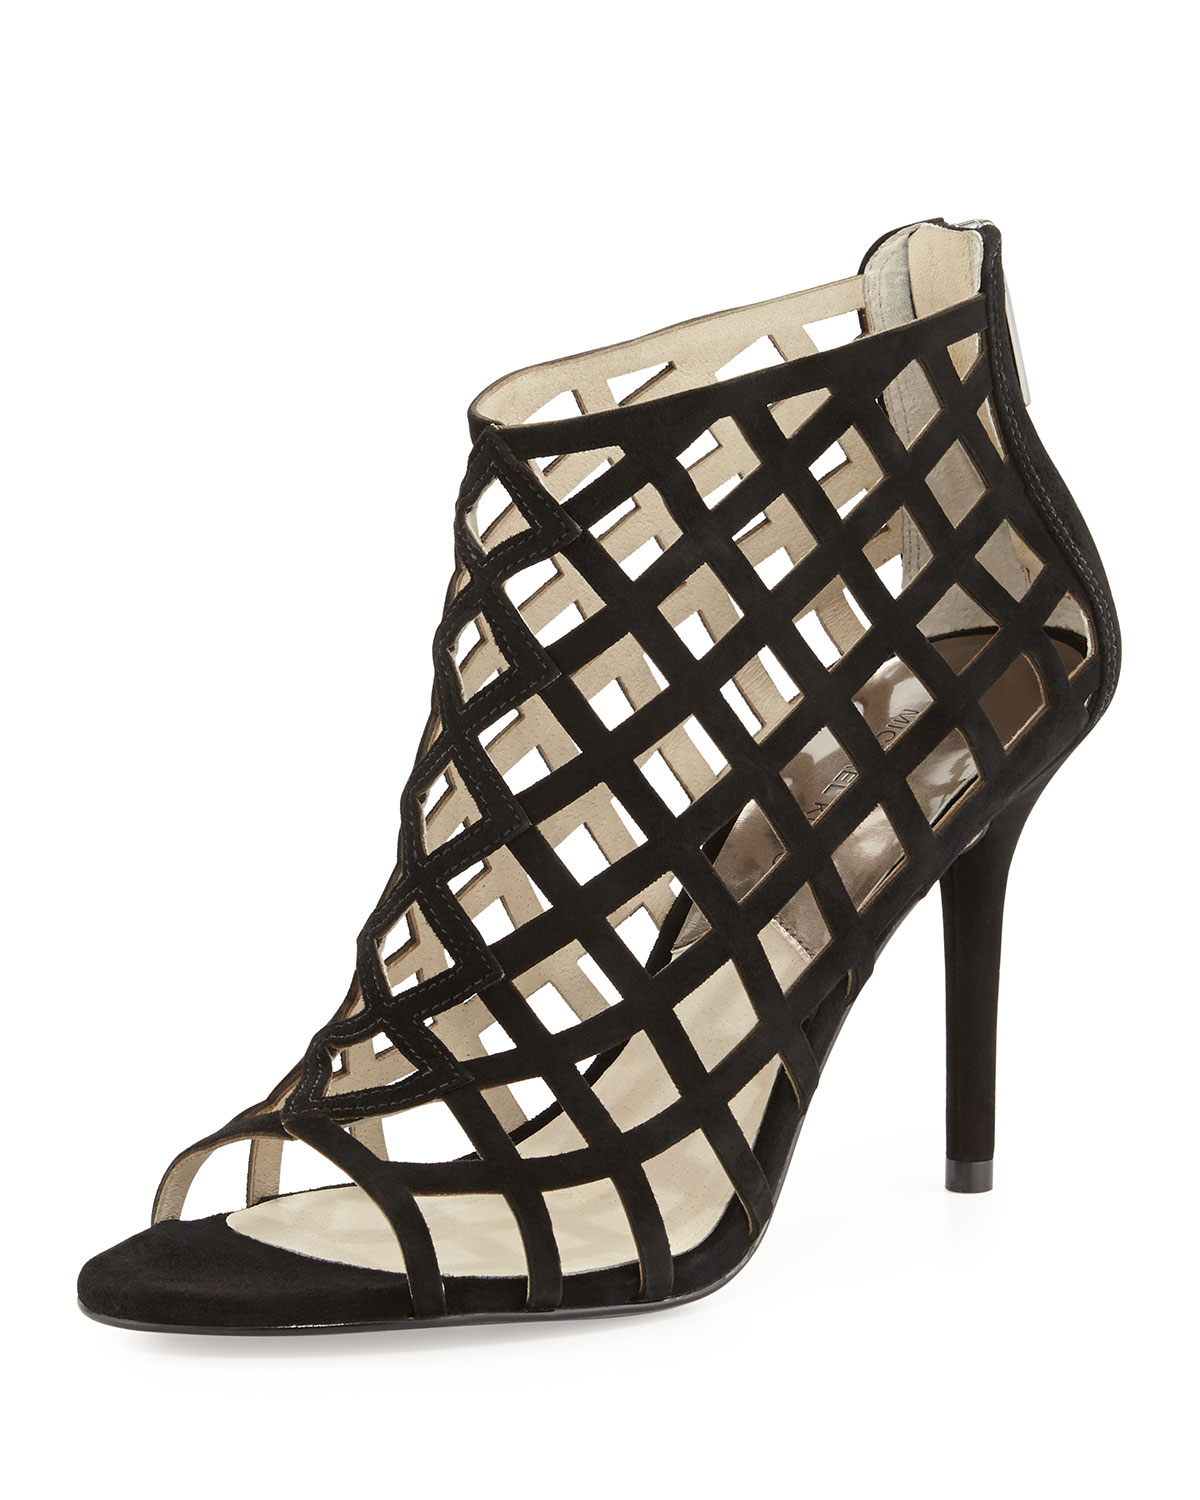 1695c2c66e5 Michael Kors Yvonne Suede Cage Bootie in Black - Lyst